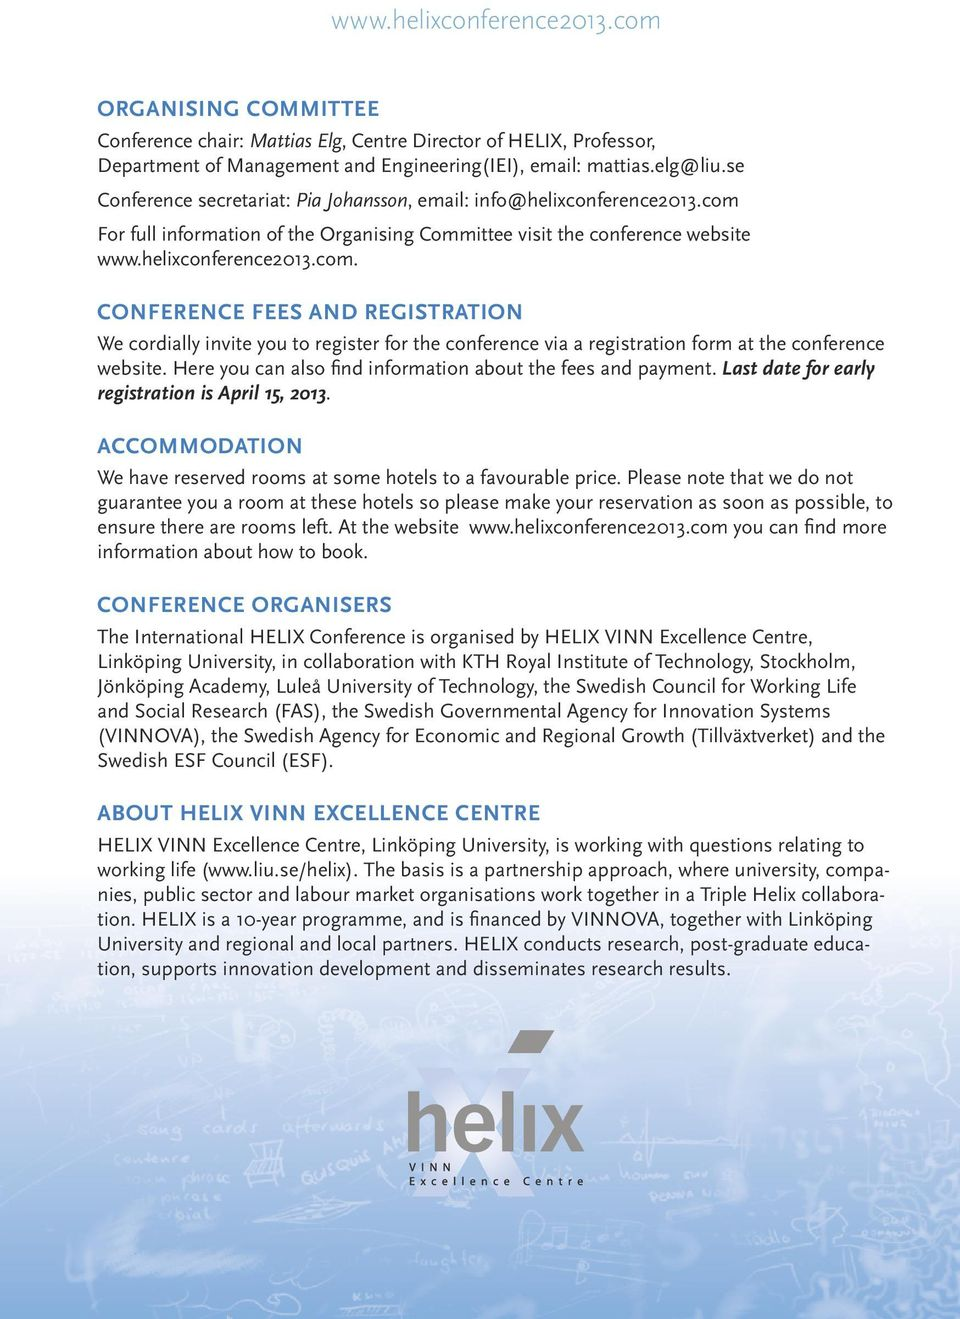 For full information of the Organising Committee visit the conference website www.helixconference2013.com.